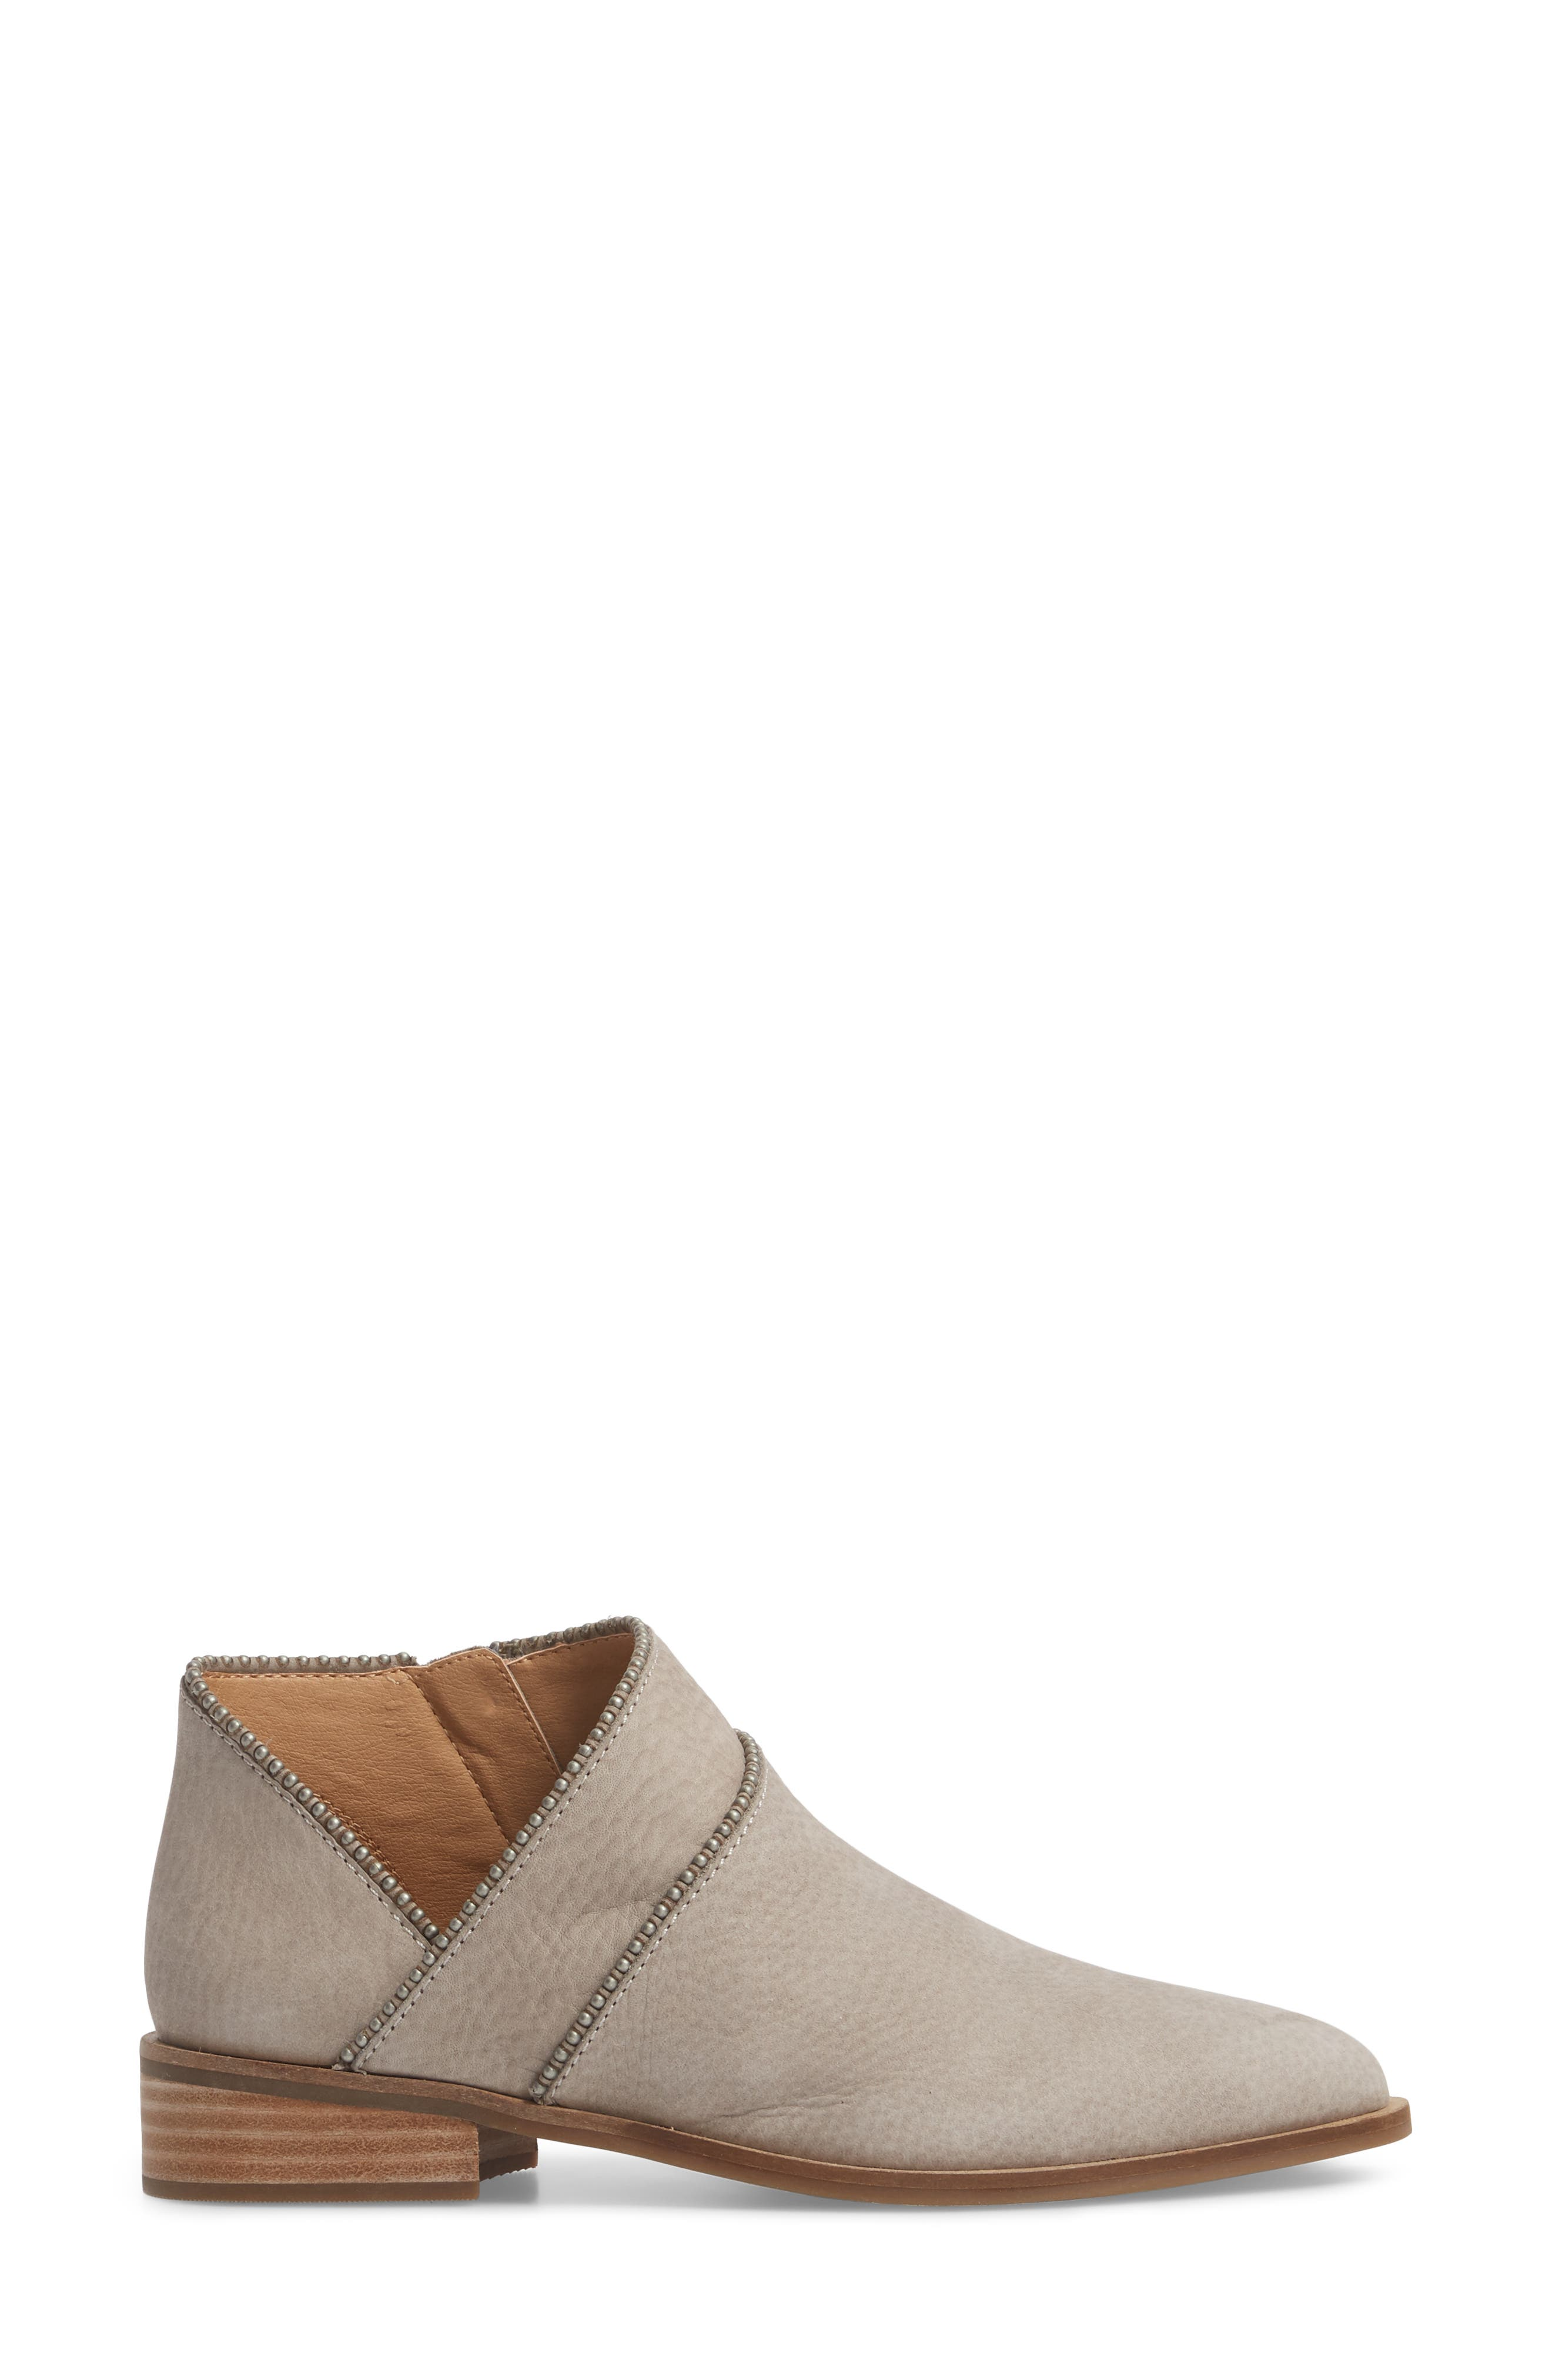 LUCKY BRAND,                             Perrma Bootie,                             Alternate thumbnail 3, color,                             060